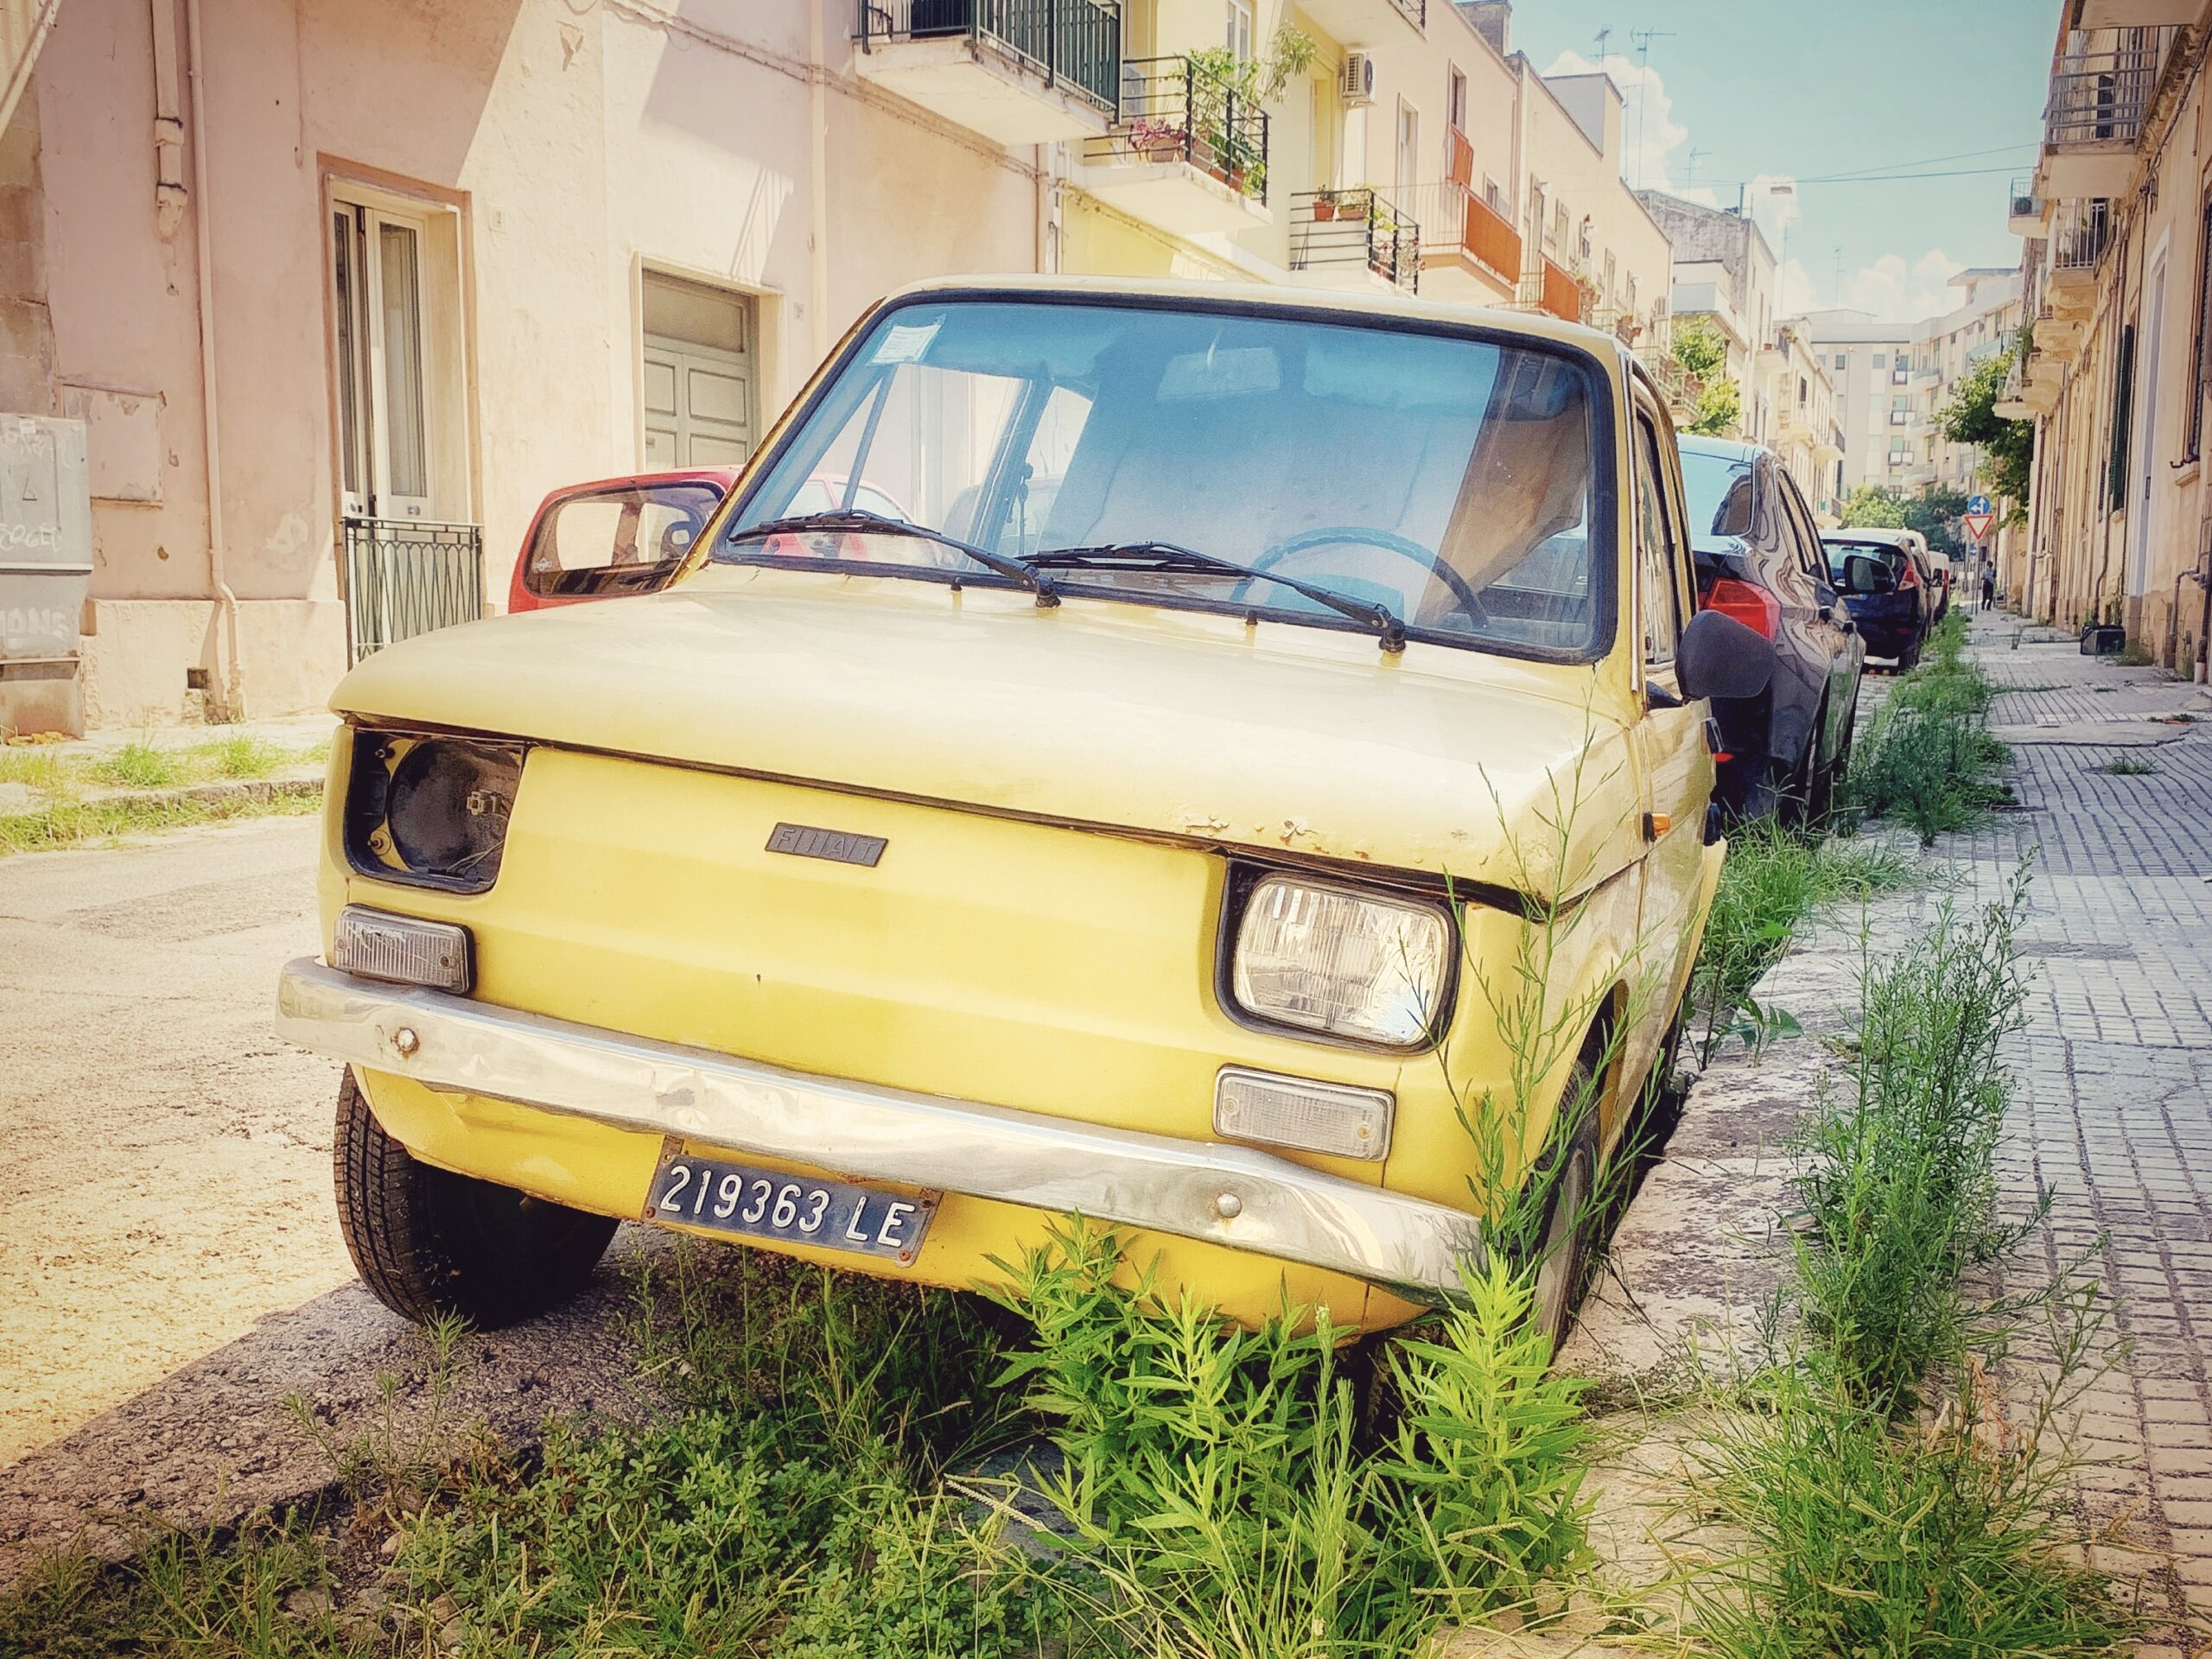 A car in Lecce, Puglia that has seen better times. Our guide to driving in Puglia.